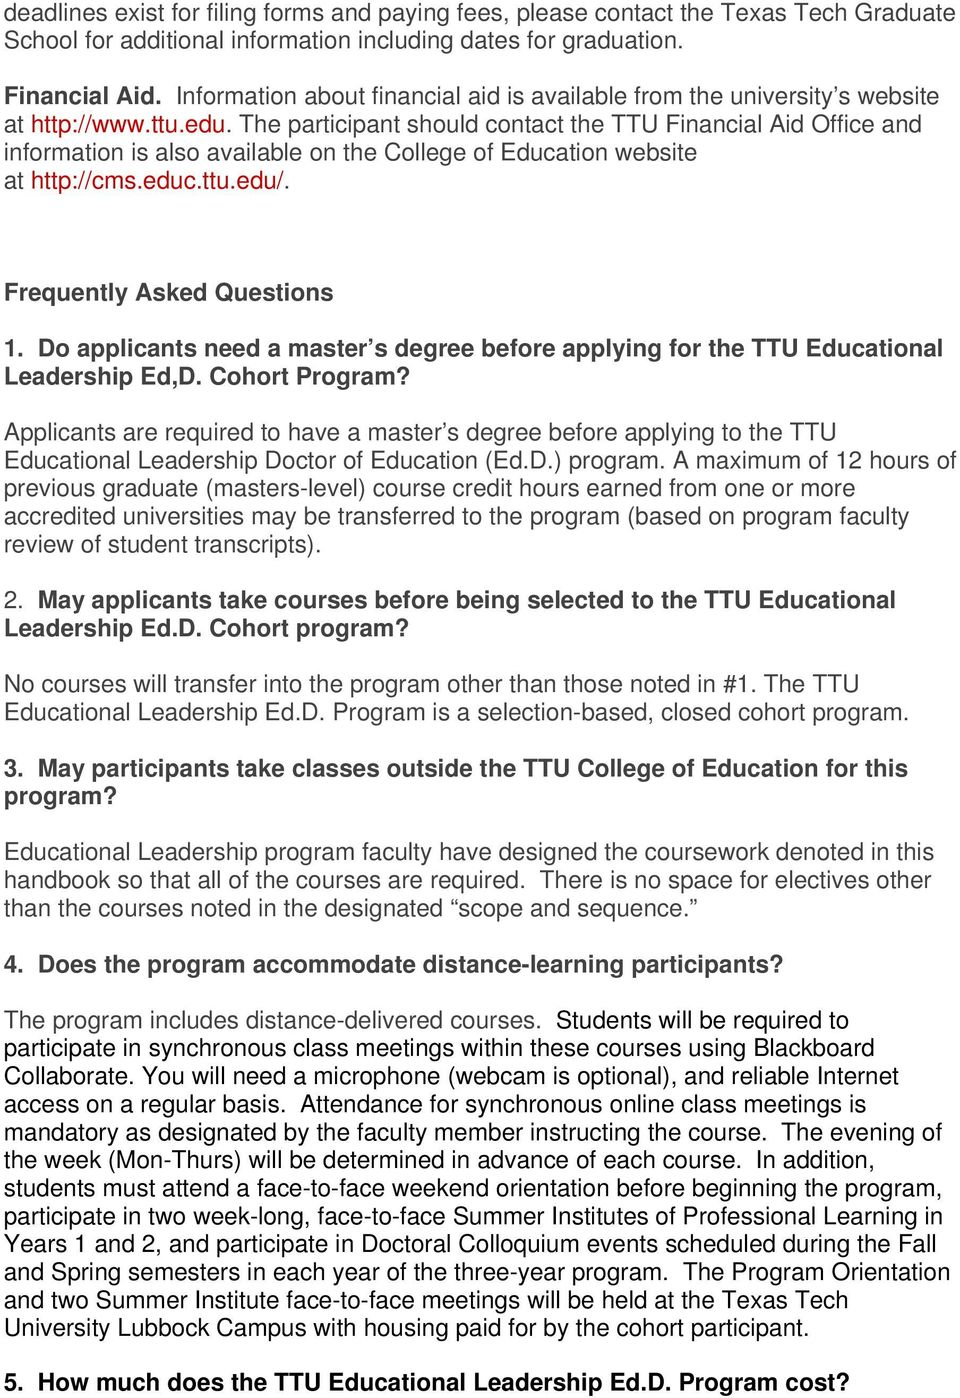 http://cmseducttuedu/ Frequently Asked Questions 1 Do applicants need a master s degree before applying for the TTU Educational Leadership Ed,D Cohort Program?